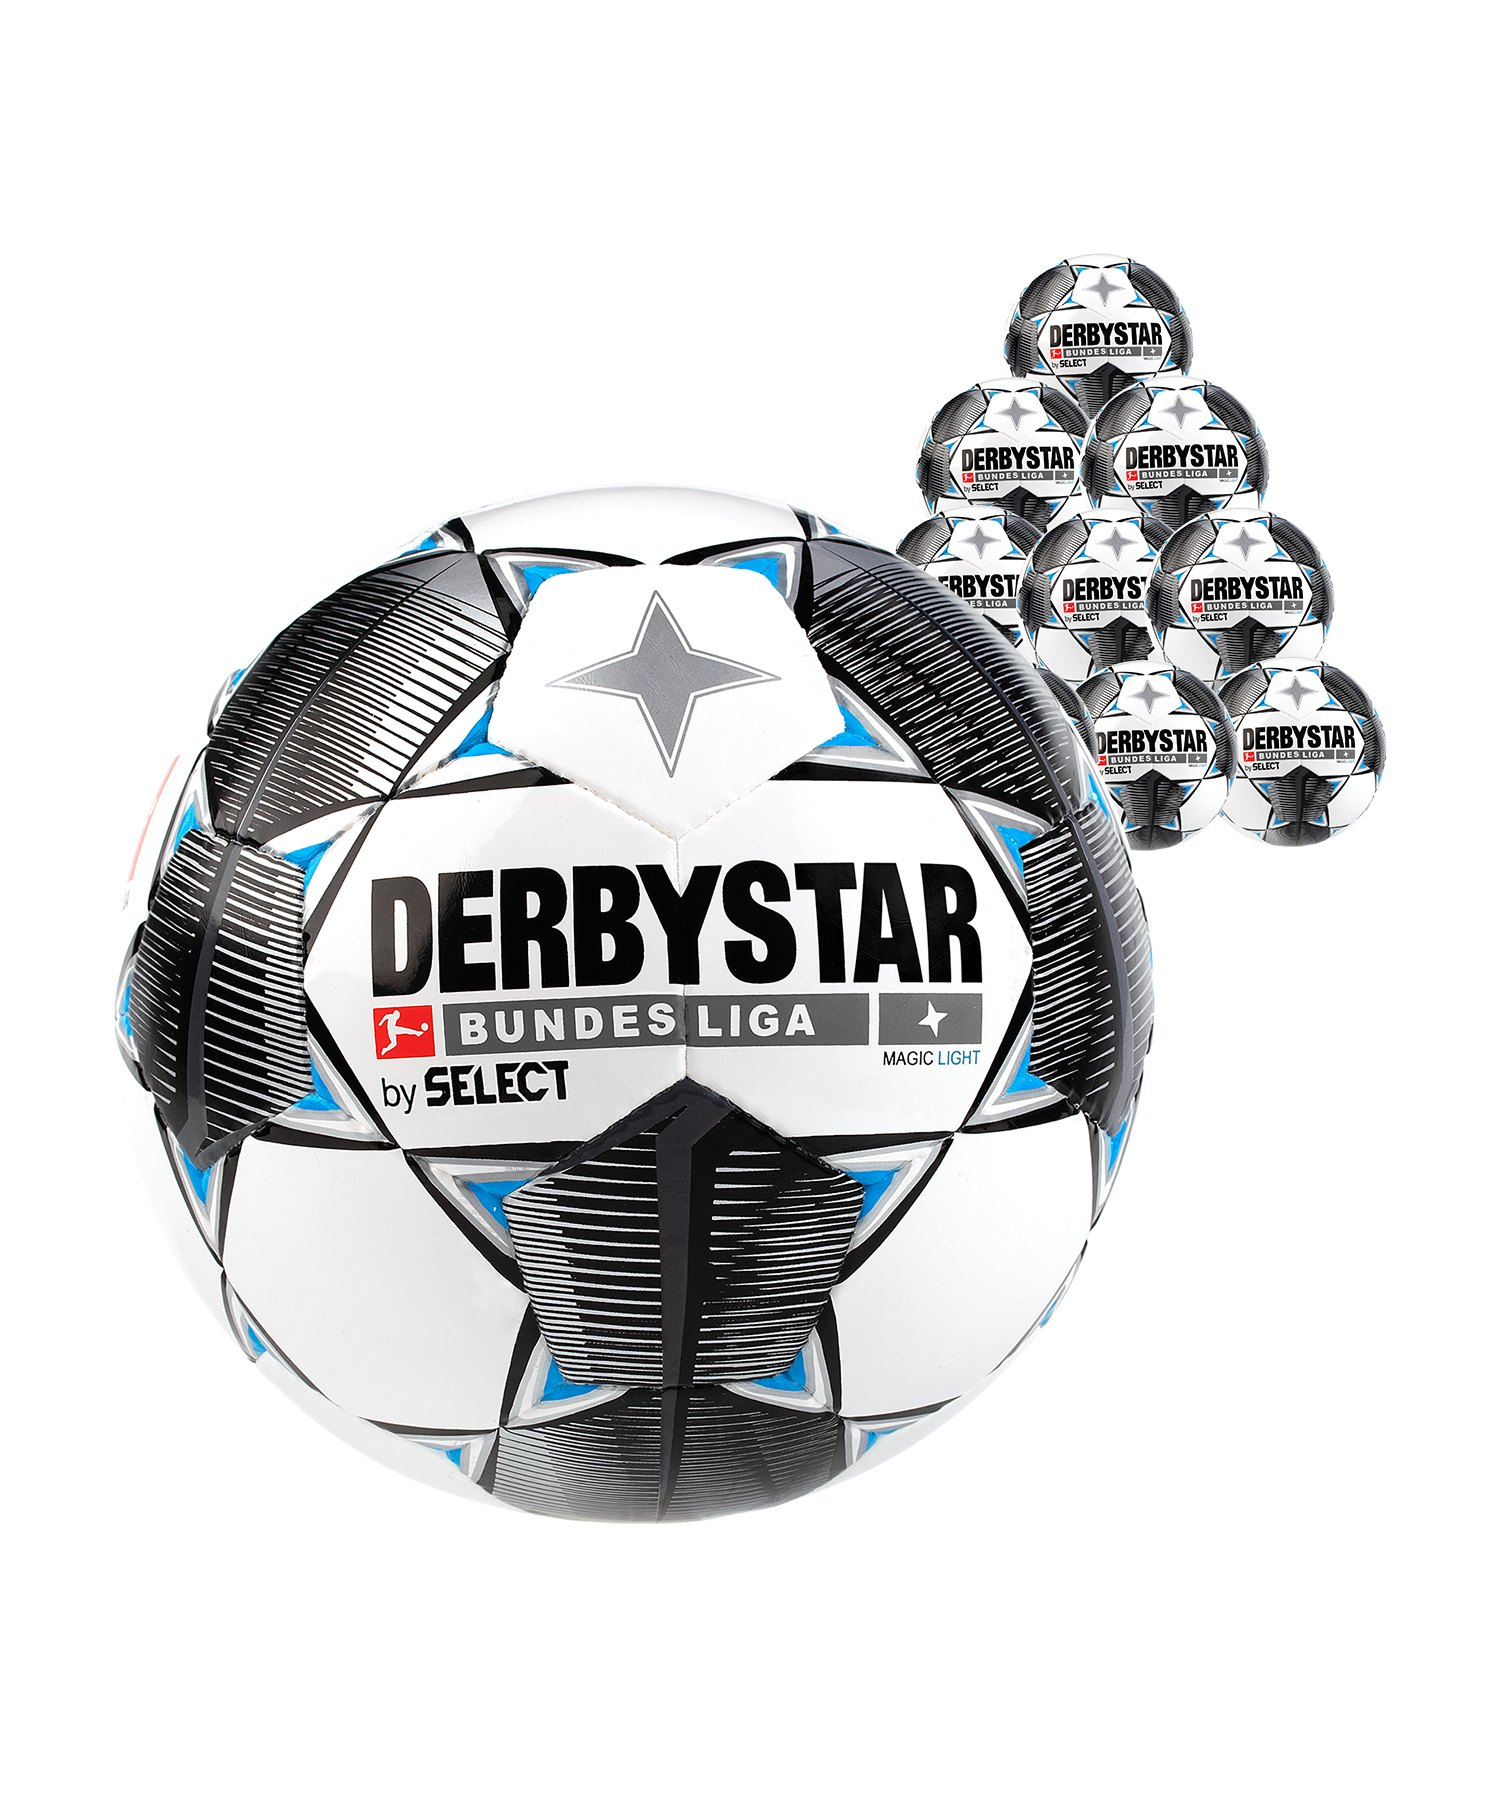 Derbystar Buli Magic Light 350g 50x Gr.5 Weiss F019 - weiss